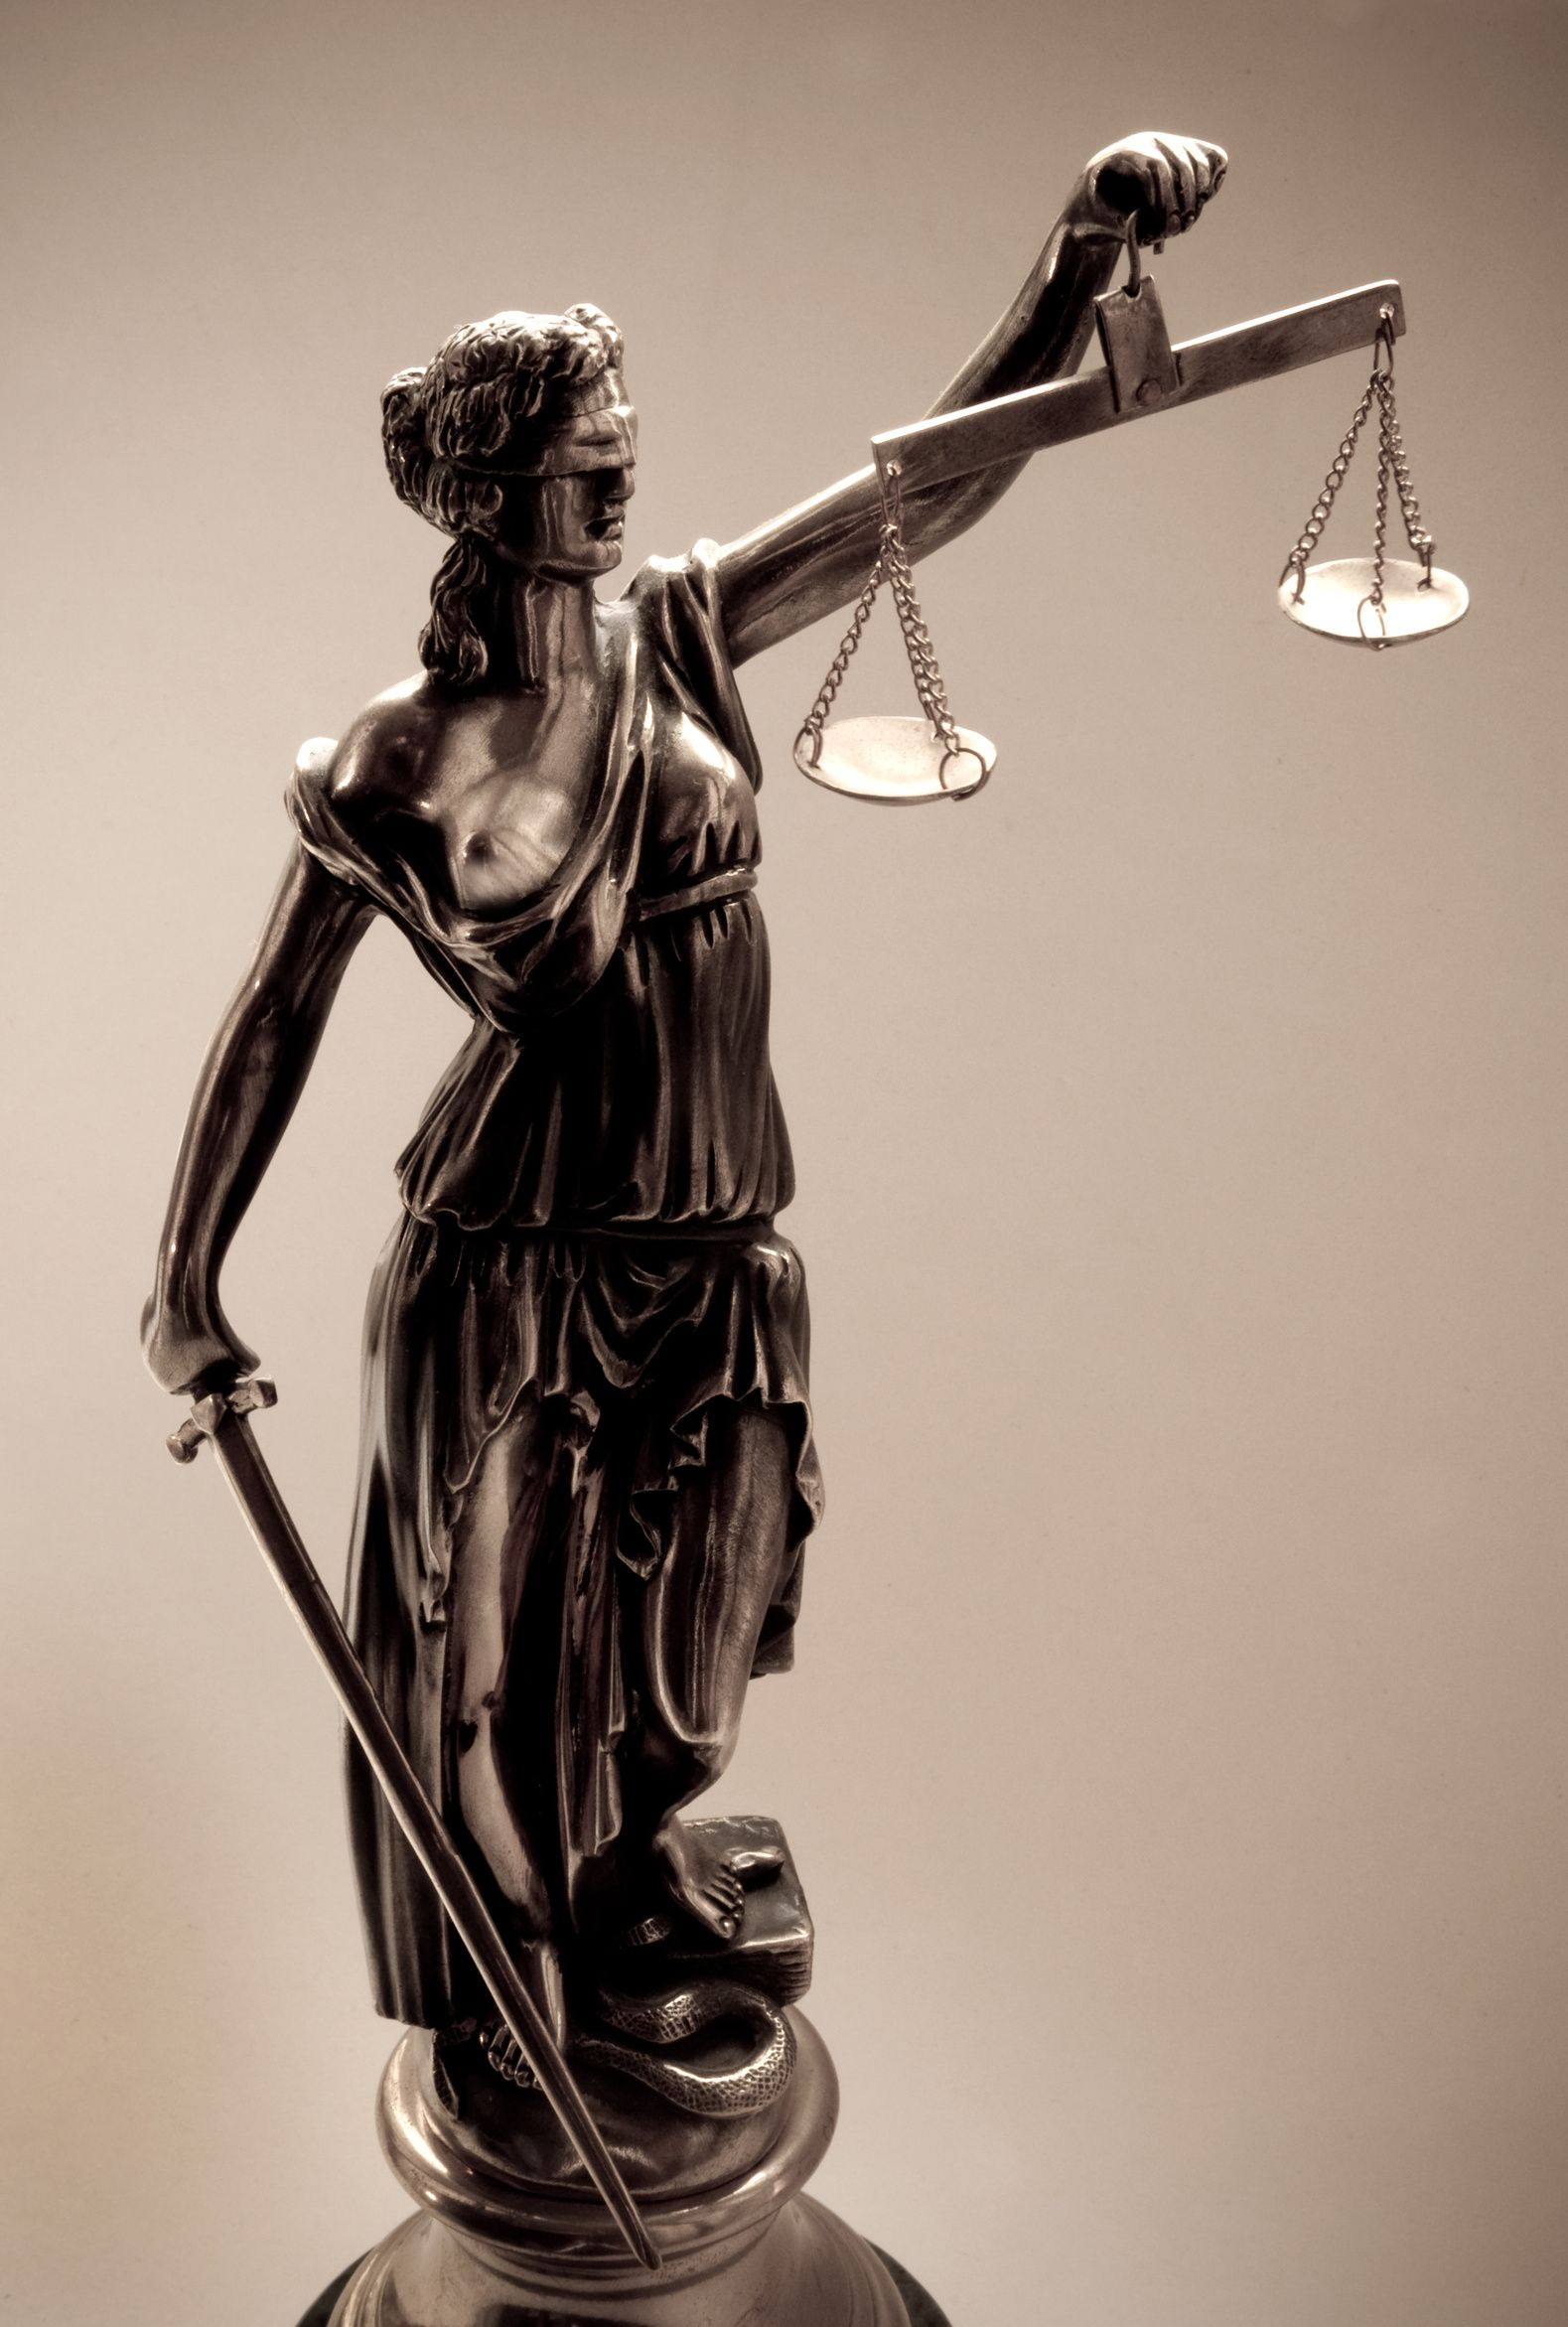 Lady Justice by Artist Unknown. This represents hundreds if not thousands  of sculptures by different artists. I love the image and the meaning behind  it. 037c4e6bf6